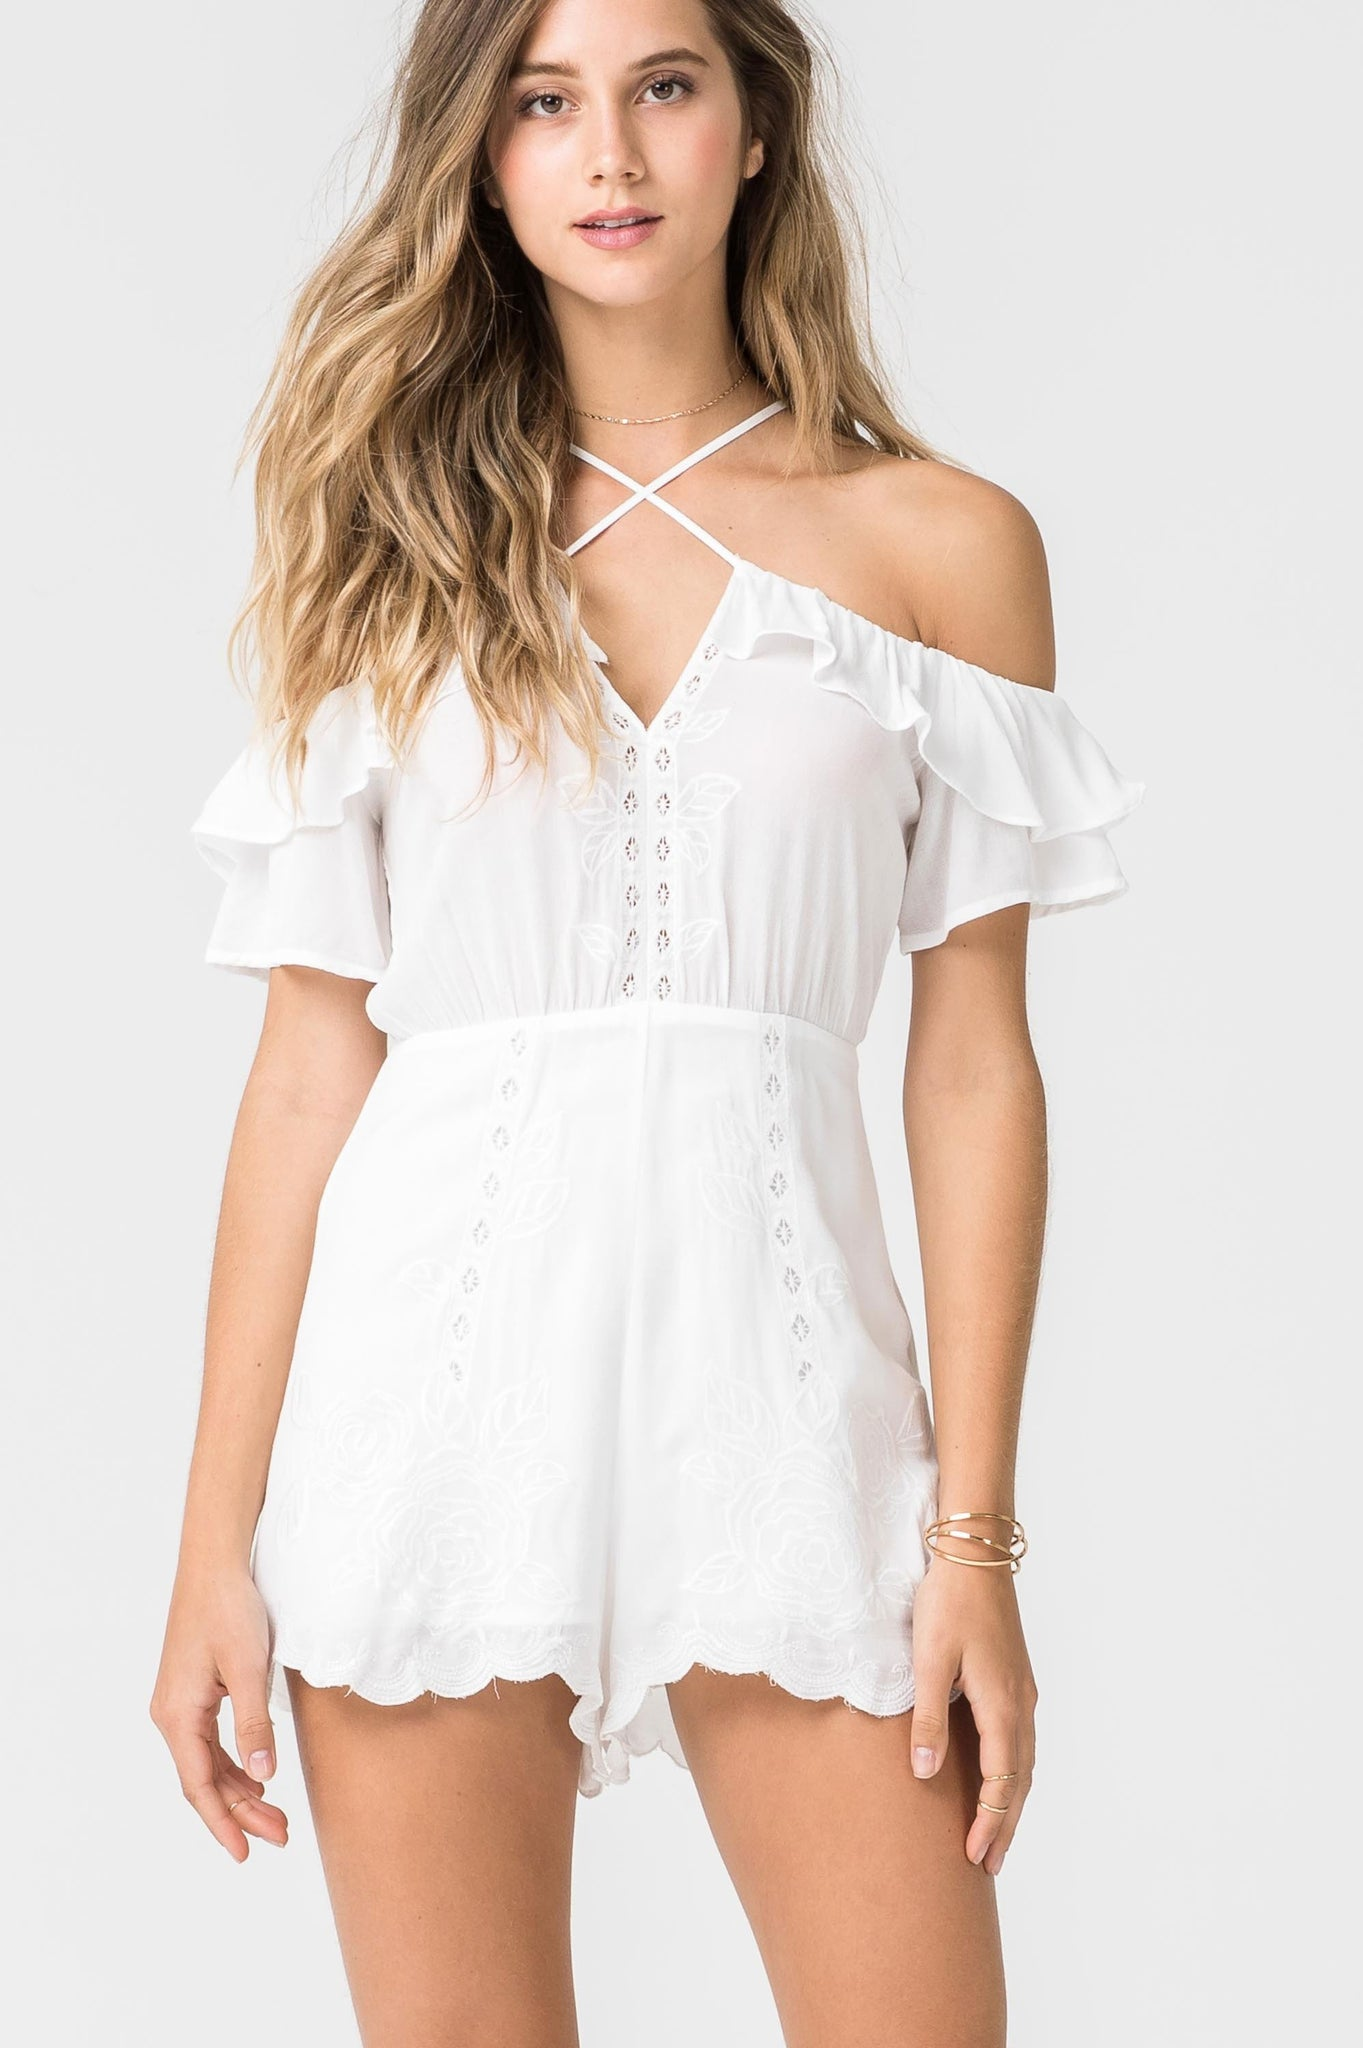 Women's white halter neck cold shoulder embroidery ruffle trim casual romper playsuit